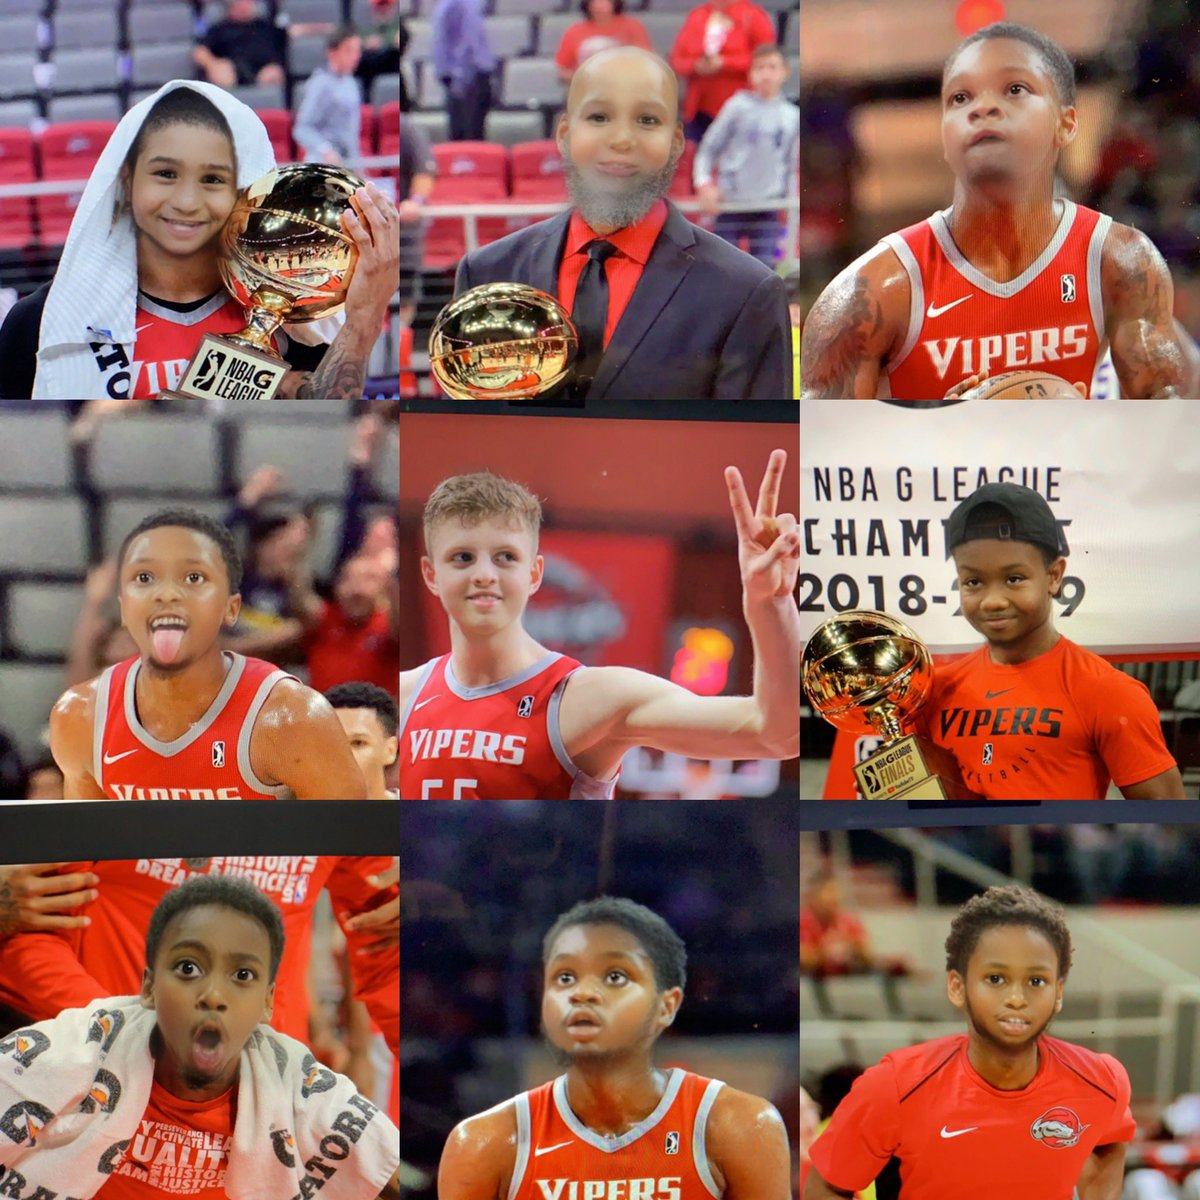 Anyone else loving these #Snapchat filters?   ———- #babyfilter #filter #rgvvipers #gleaguechampions #nbagleague #nextlevel #vipersbabies<br>http://pic.twitter.com/UfbHT577SK